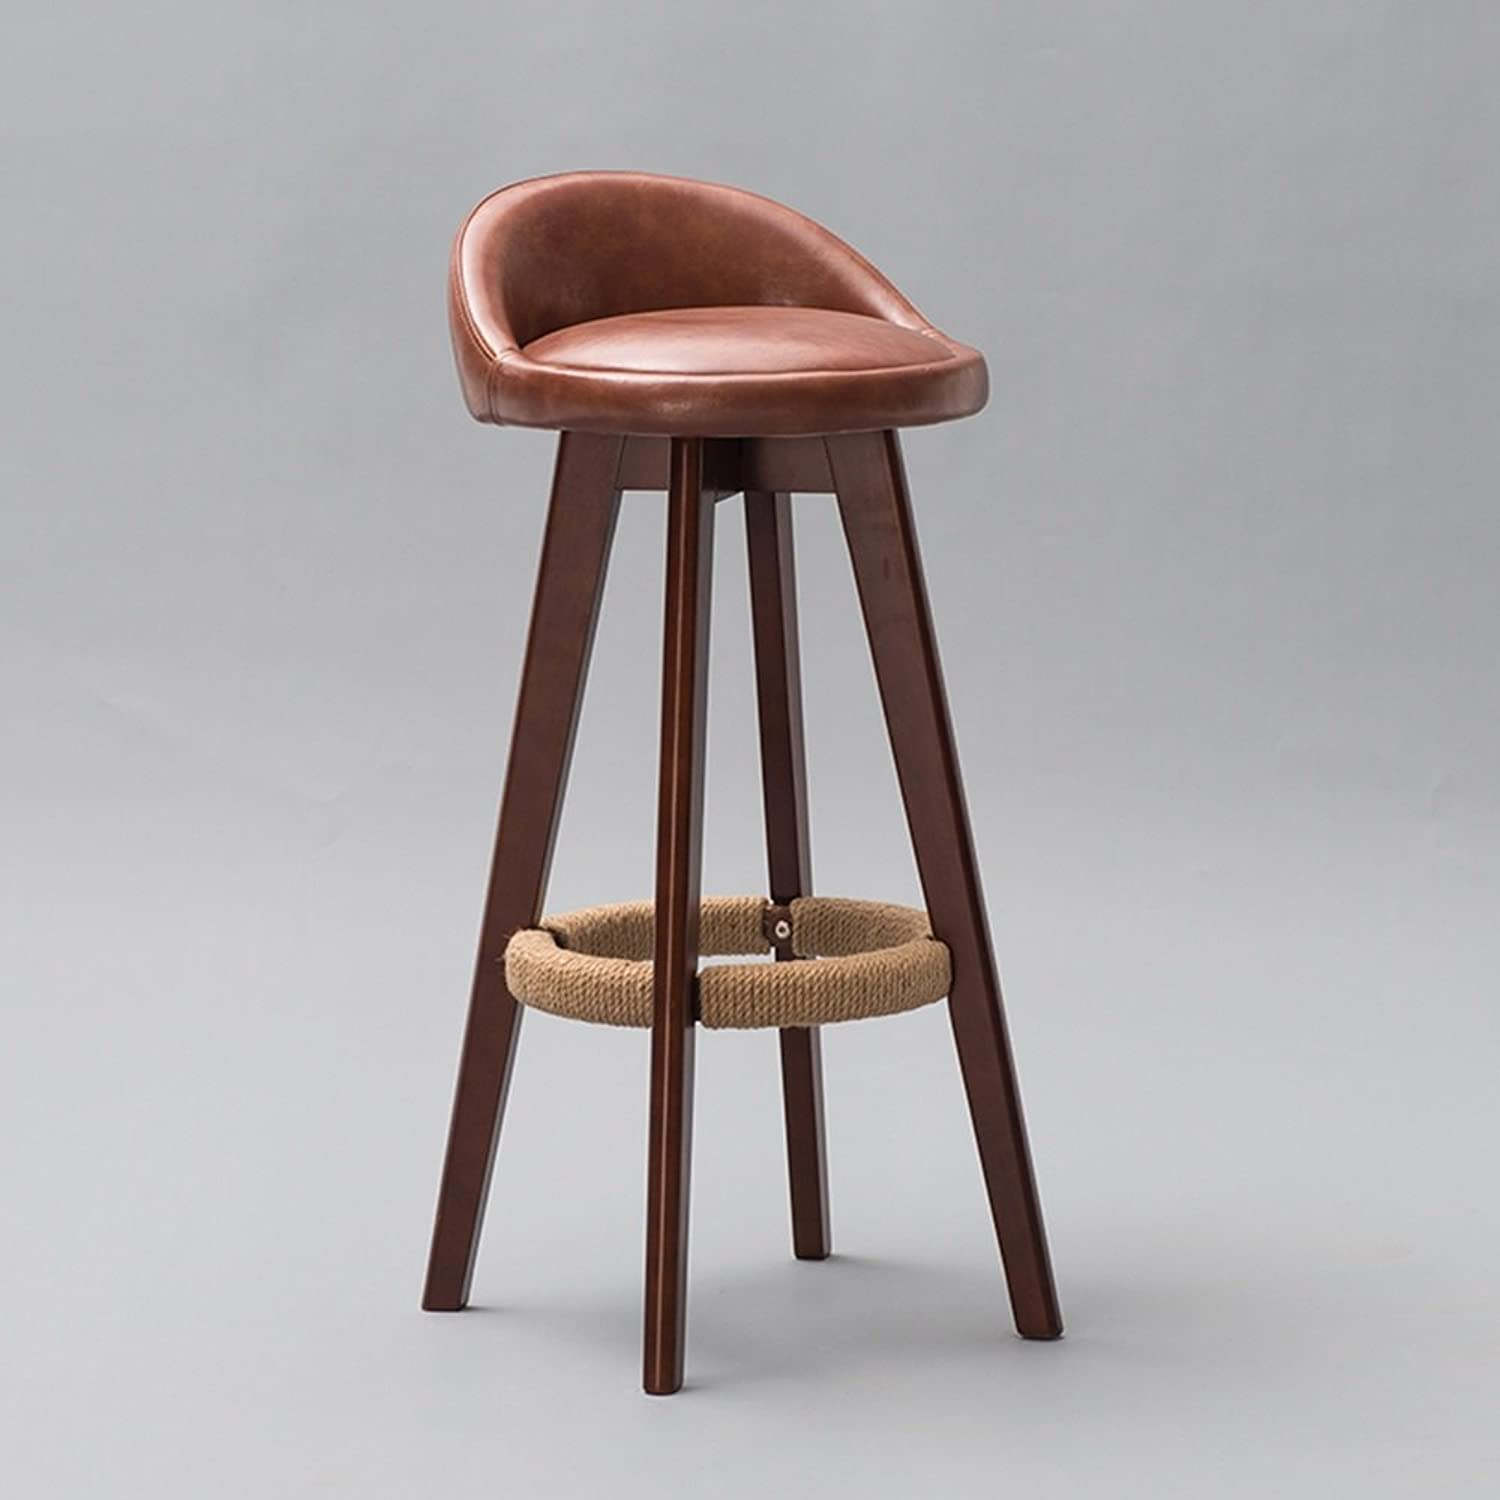 GJM Shop Bar Stool Retro Solid Wood Frame 360 ° redate Household Products Kitchen Breakfast Chair Easy to Move (color   C)